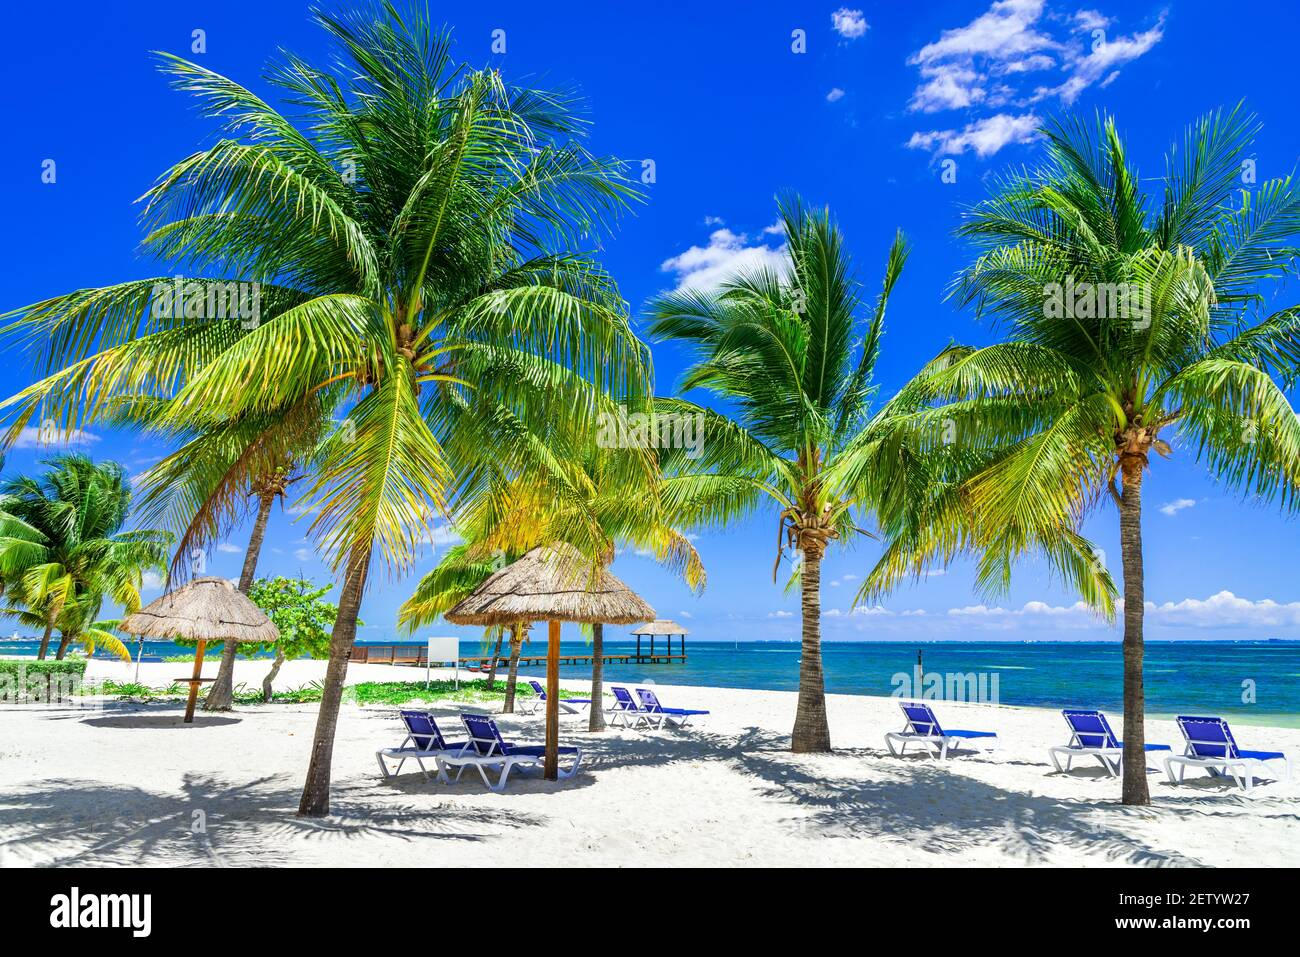 Tropical landscape with coconut palm on caribbean beach, Cancun, Yucatan Peninsula in Mexico. Stock Photo